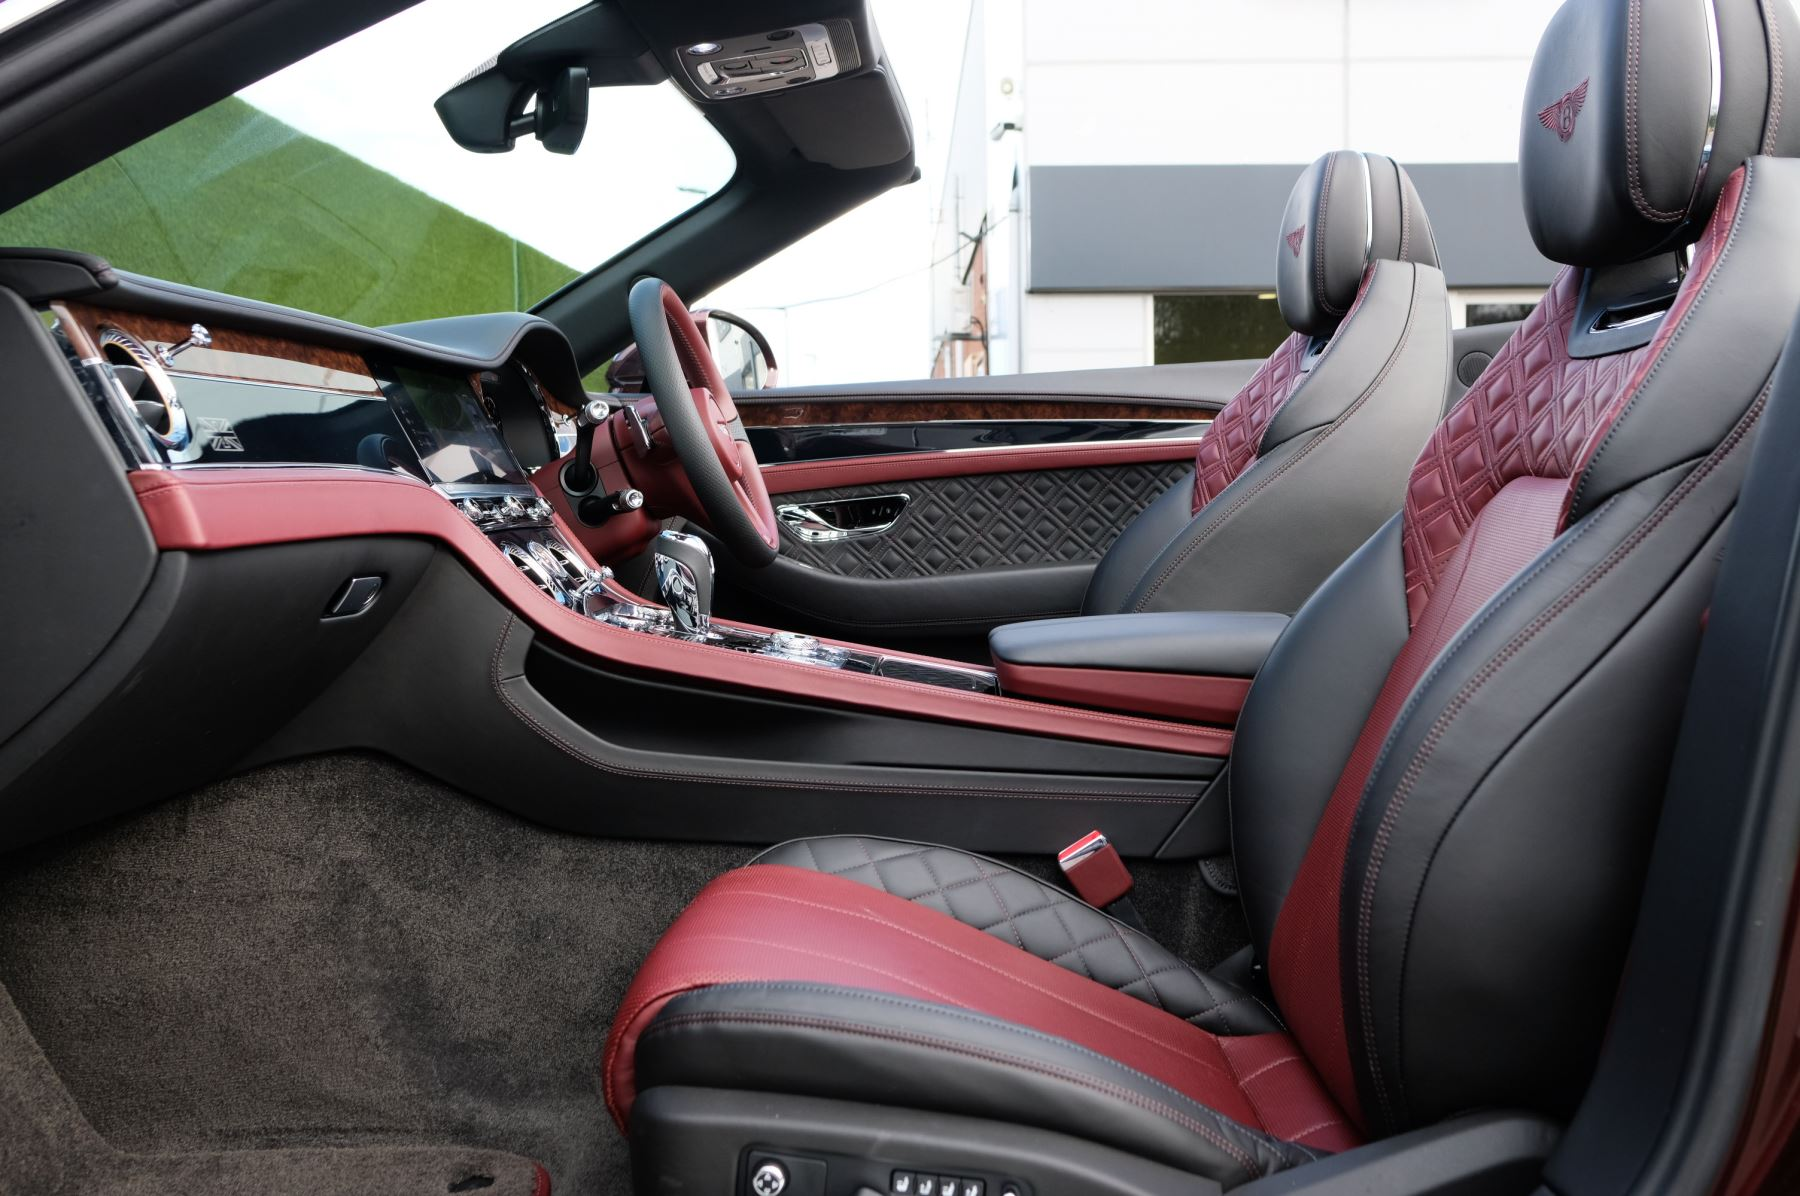 Bentley Continental GTC 6.0 W12 - First Edition Specification image 15